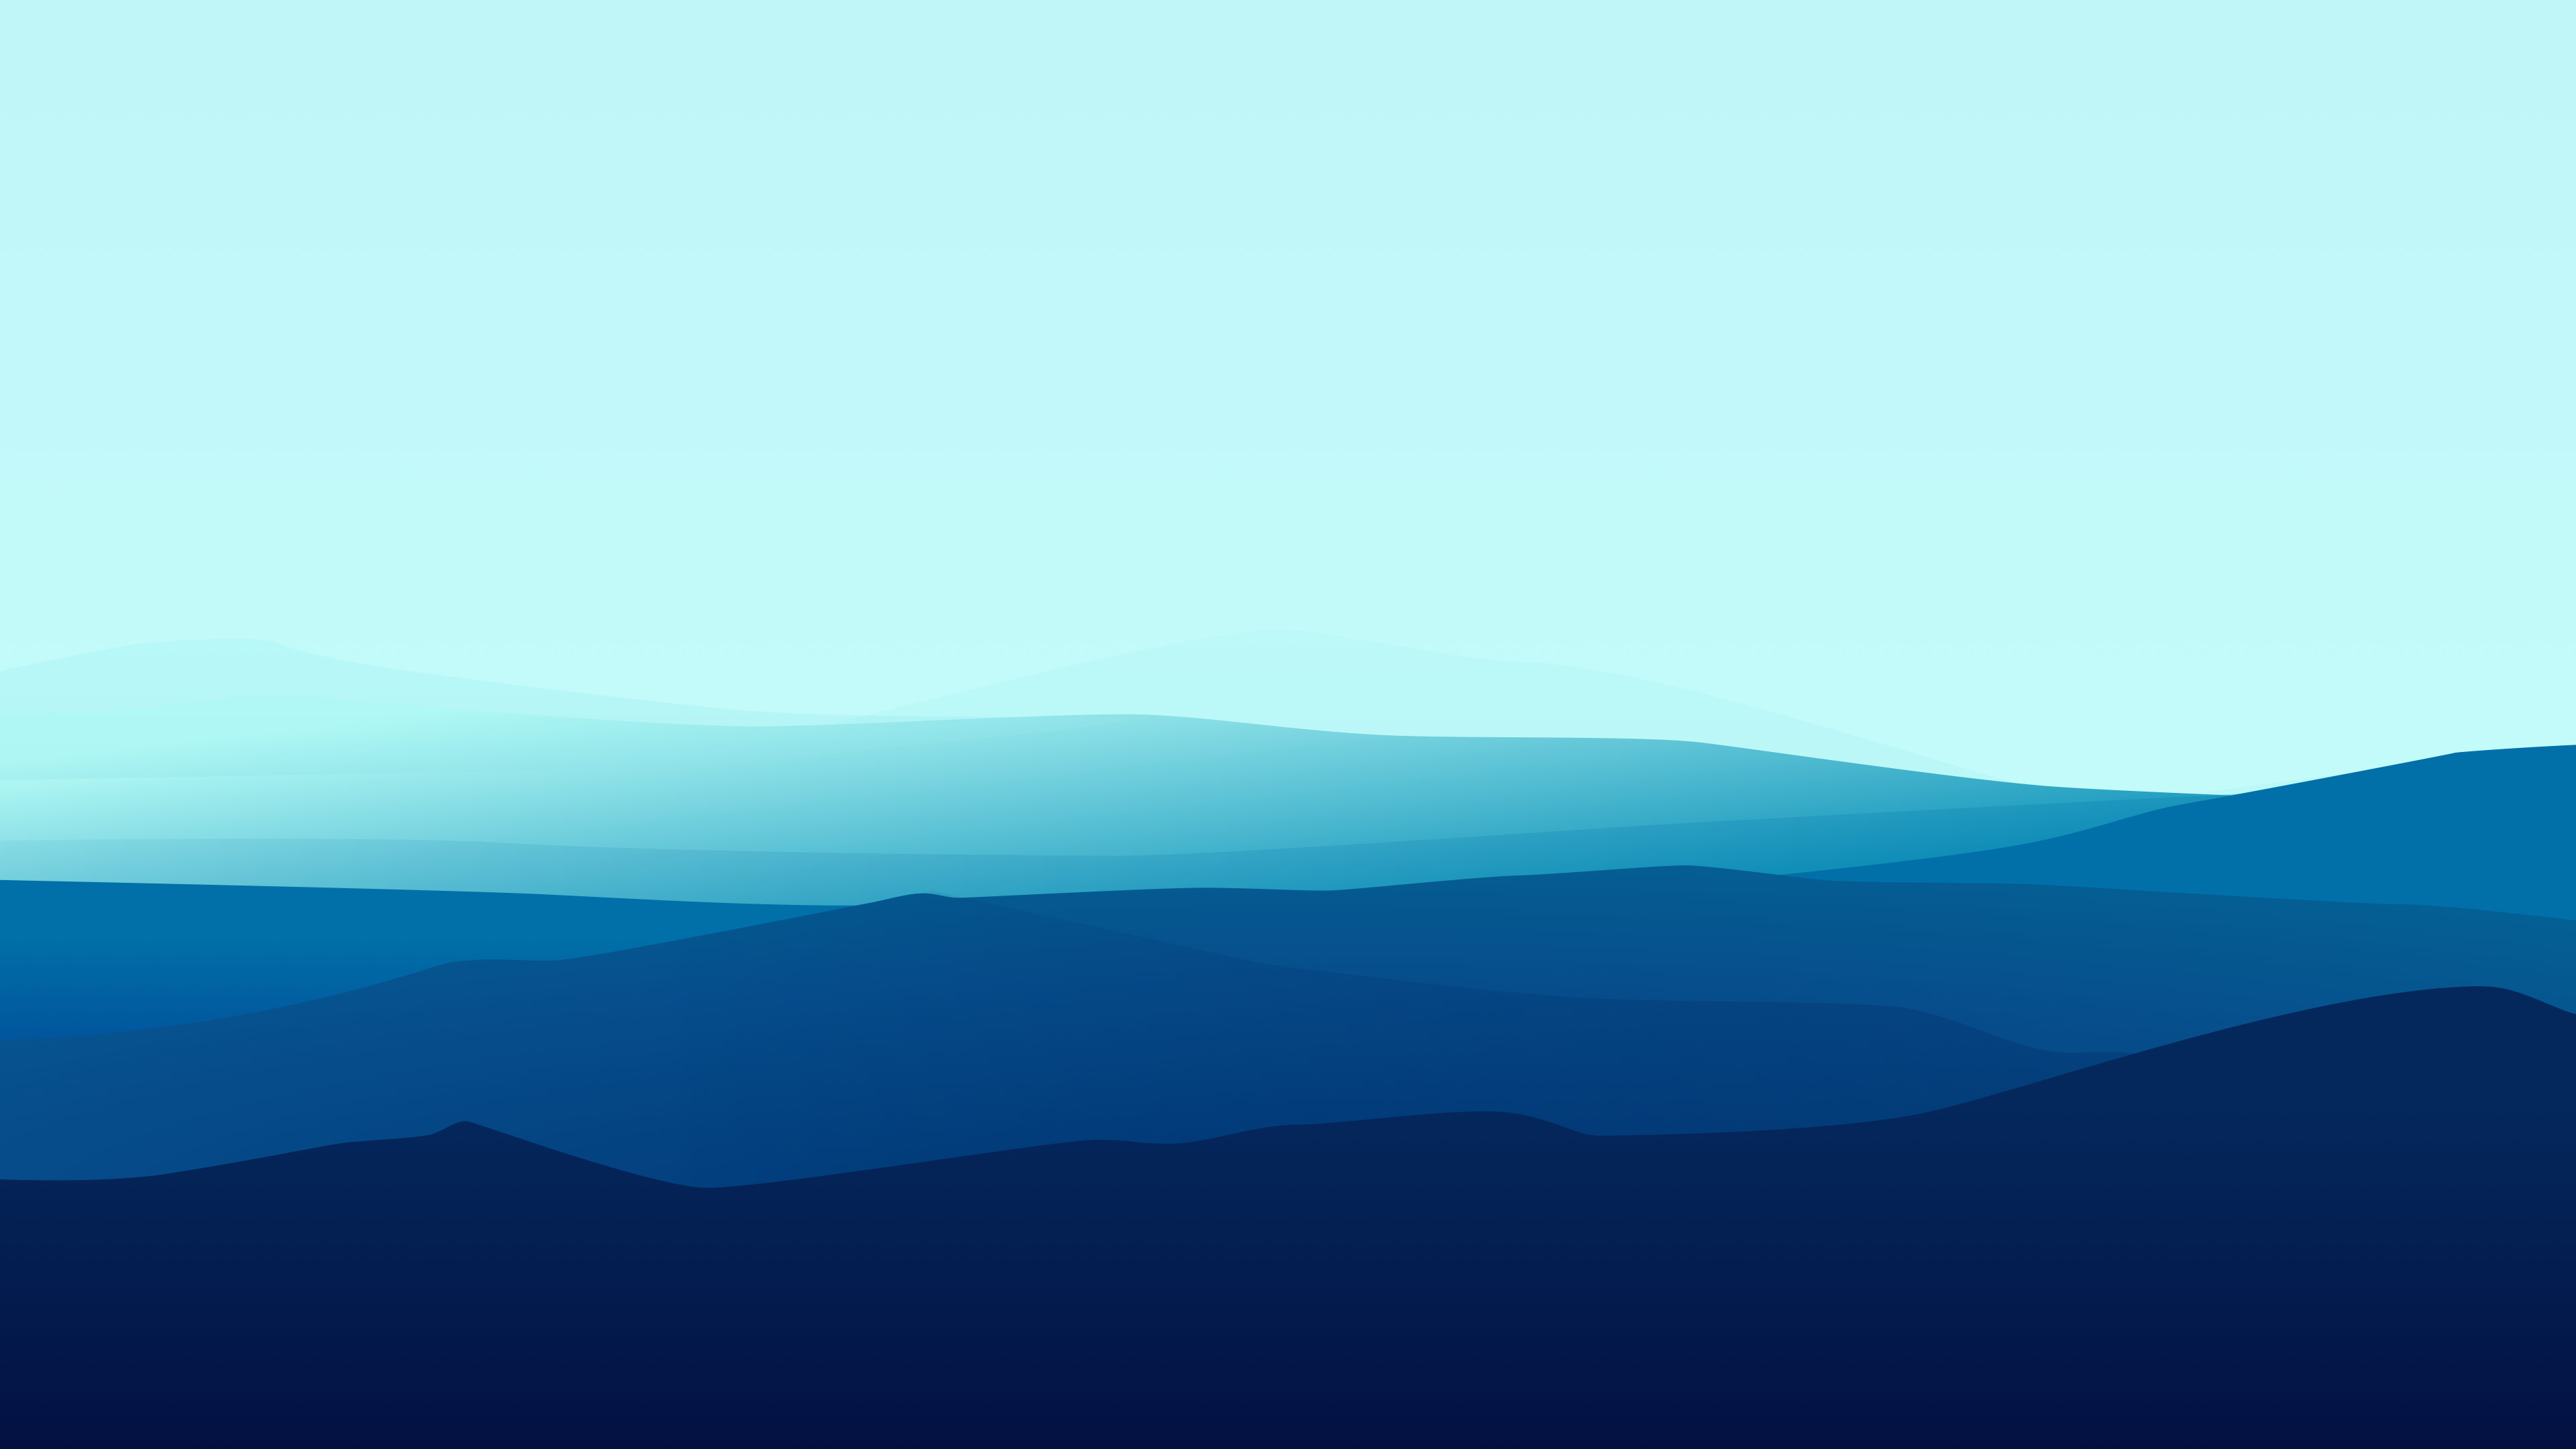 4K Windows 10 Wallpapers (64+ images)